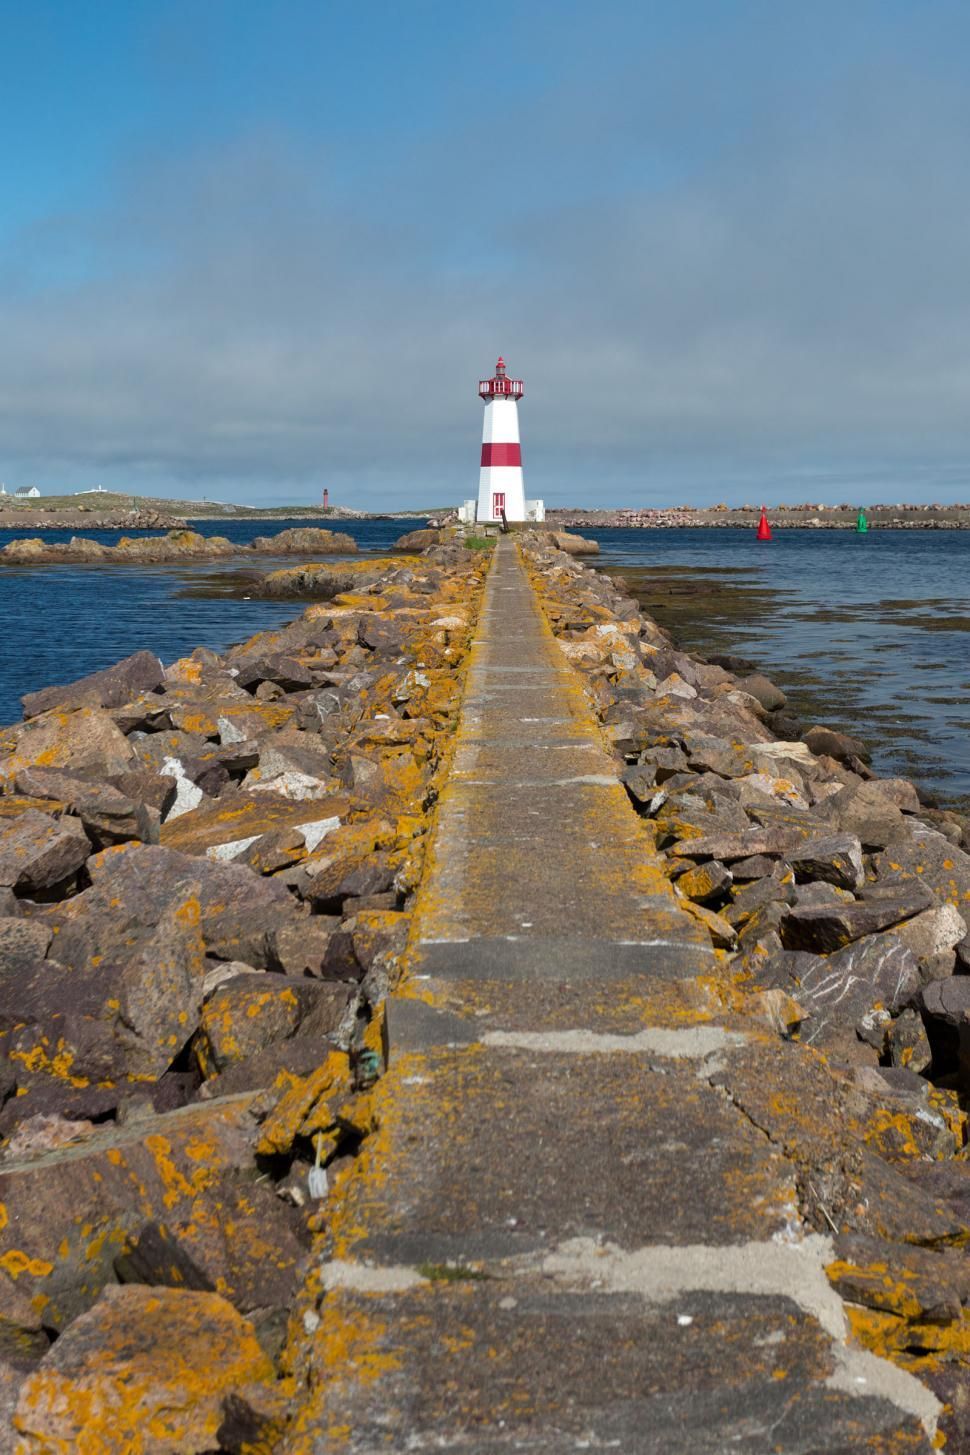 Download Free Stock HD Photo of Lighthouse and walkway Online